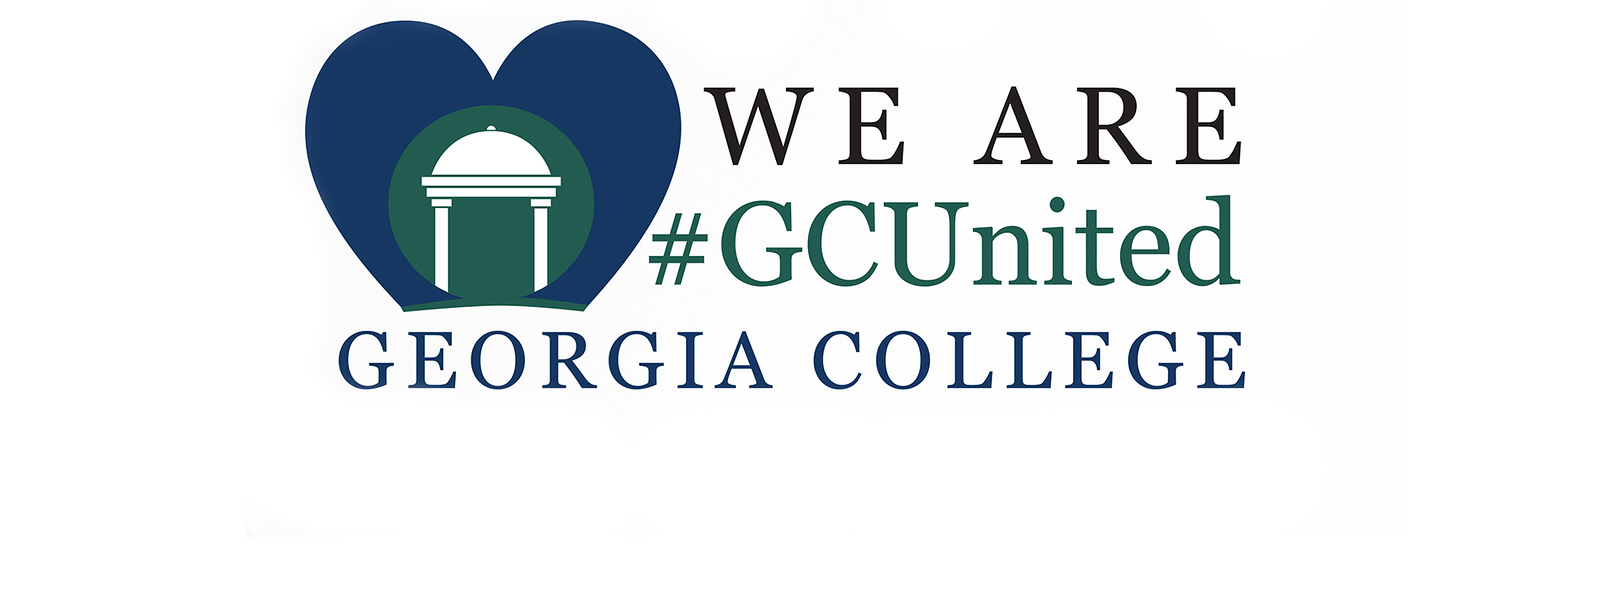 Image for #GCUnited going strong, offering support for Georgia College and local community